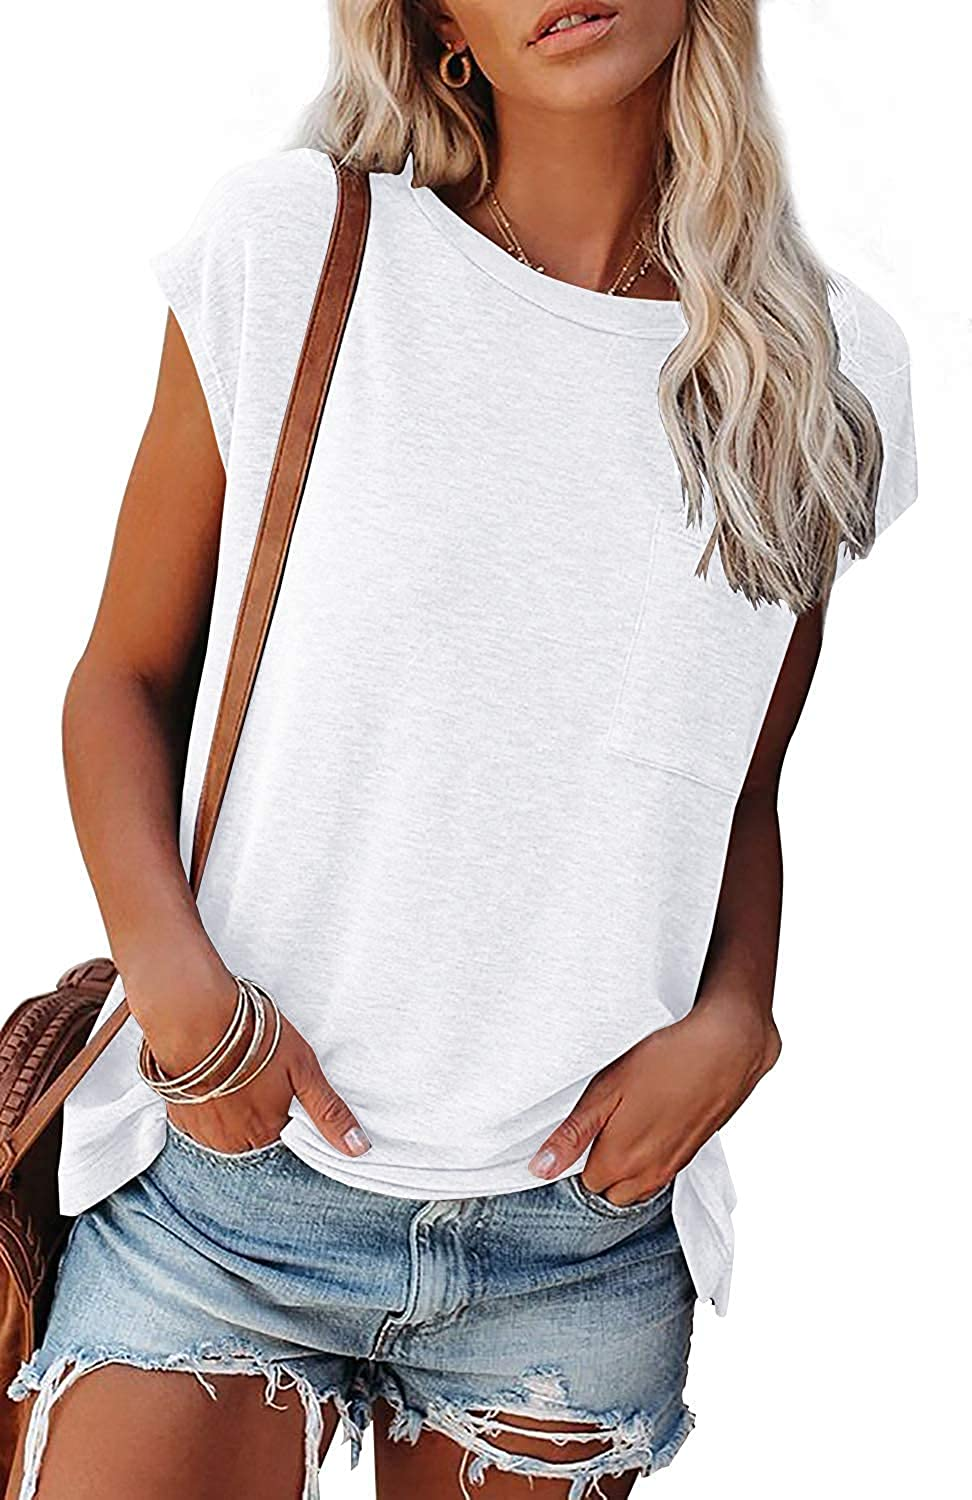 Women's Summer Cap Short Sleeve T Shirts Casual Loose Fit Tee Blouse Tuinc Tops